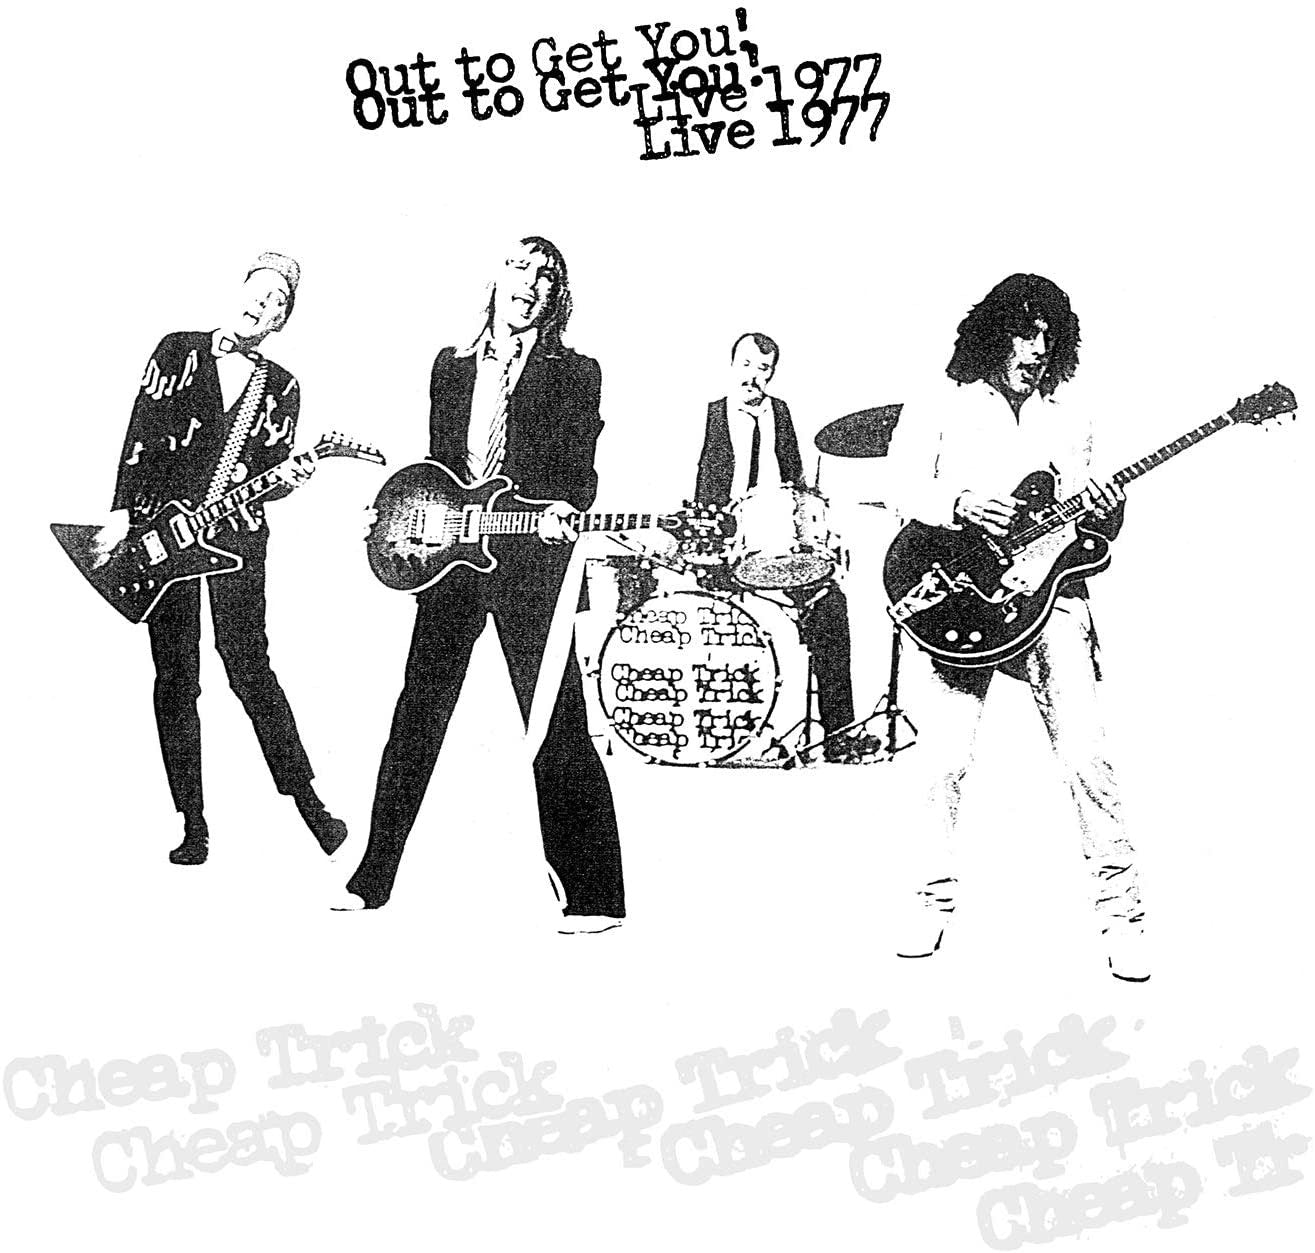 Out to Get You! Live 1977 - Cheap Trick (Rsd 2020) [Vinyl]